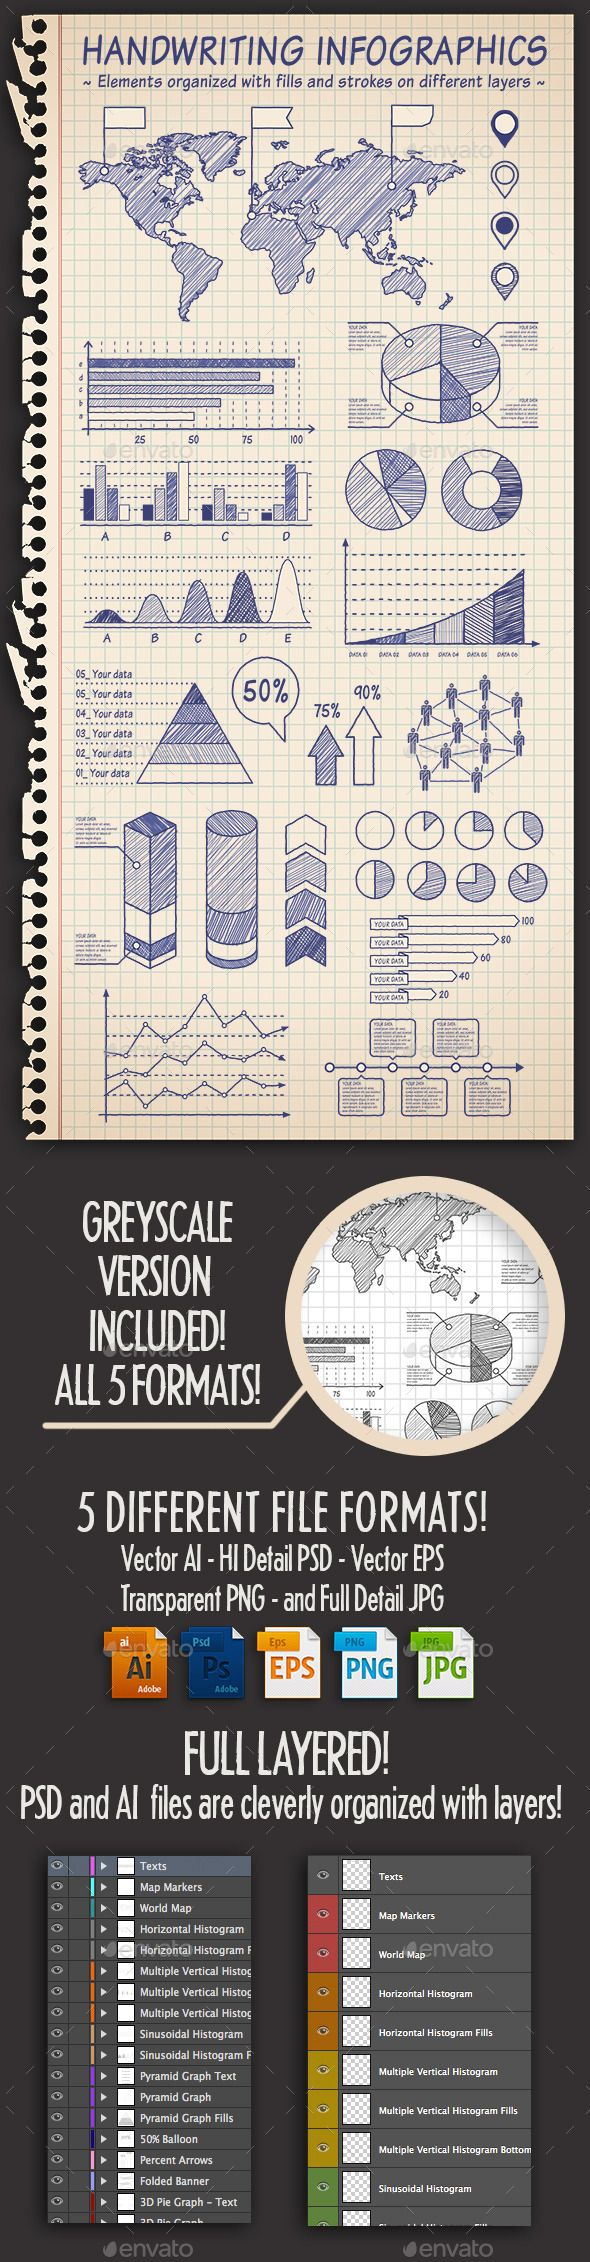 Hand Drawn Sketch Infographics Template PSD, AI, EPS #design Download: http://graphicriver.net/item/hand-drawn-sketch-infographics/10417001?ref=ksioks